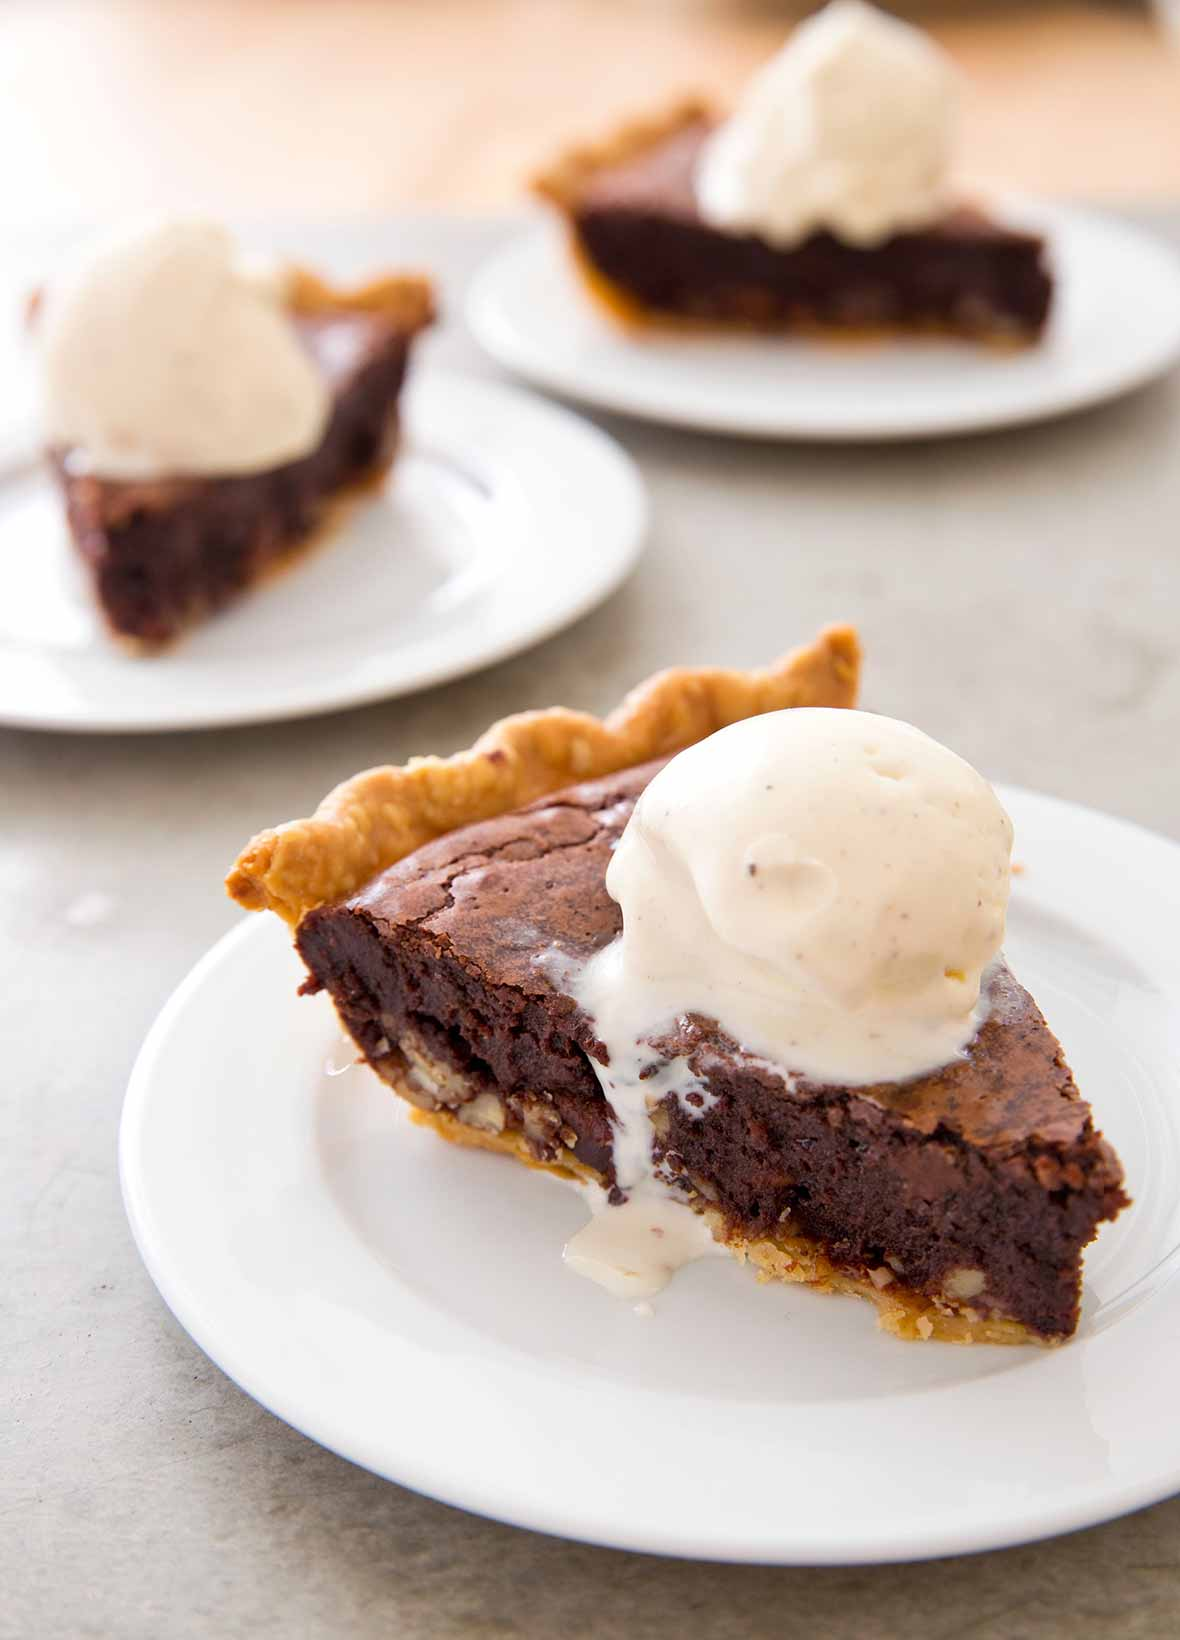 A slice of brownie tar heel pie on a white plate topped with a scoop of vanilla ice cream